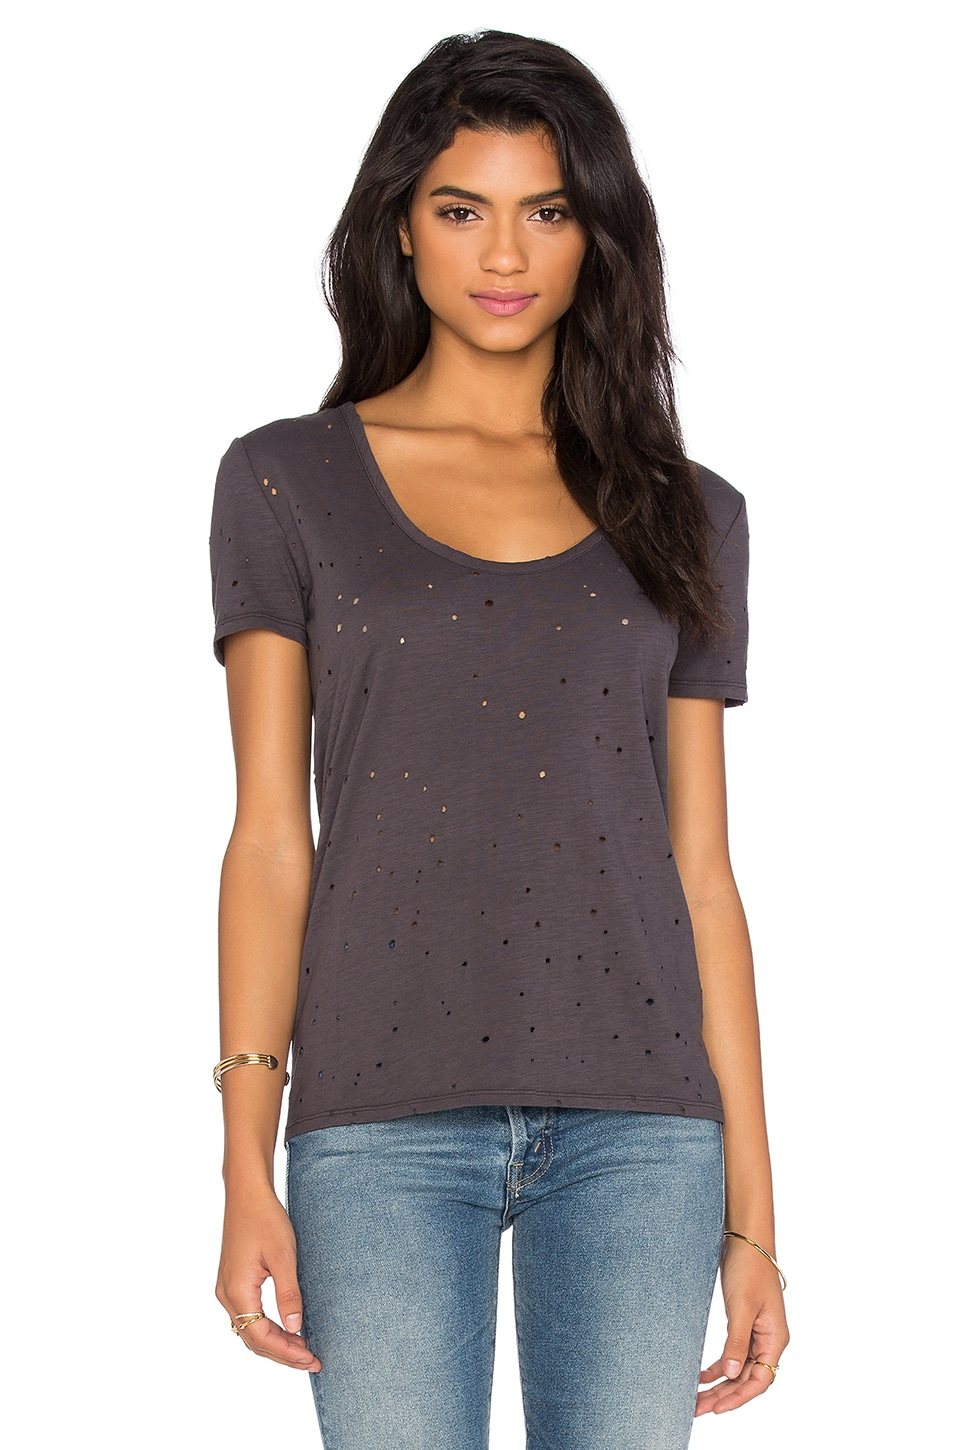 Bobi Slubbed Ripped Holes Scoop Neck Tee in Storm Cloud